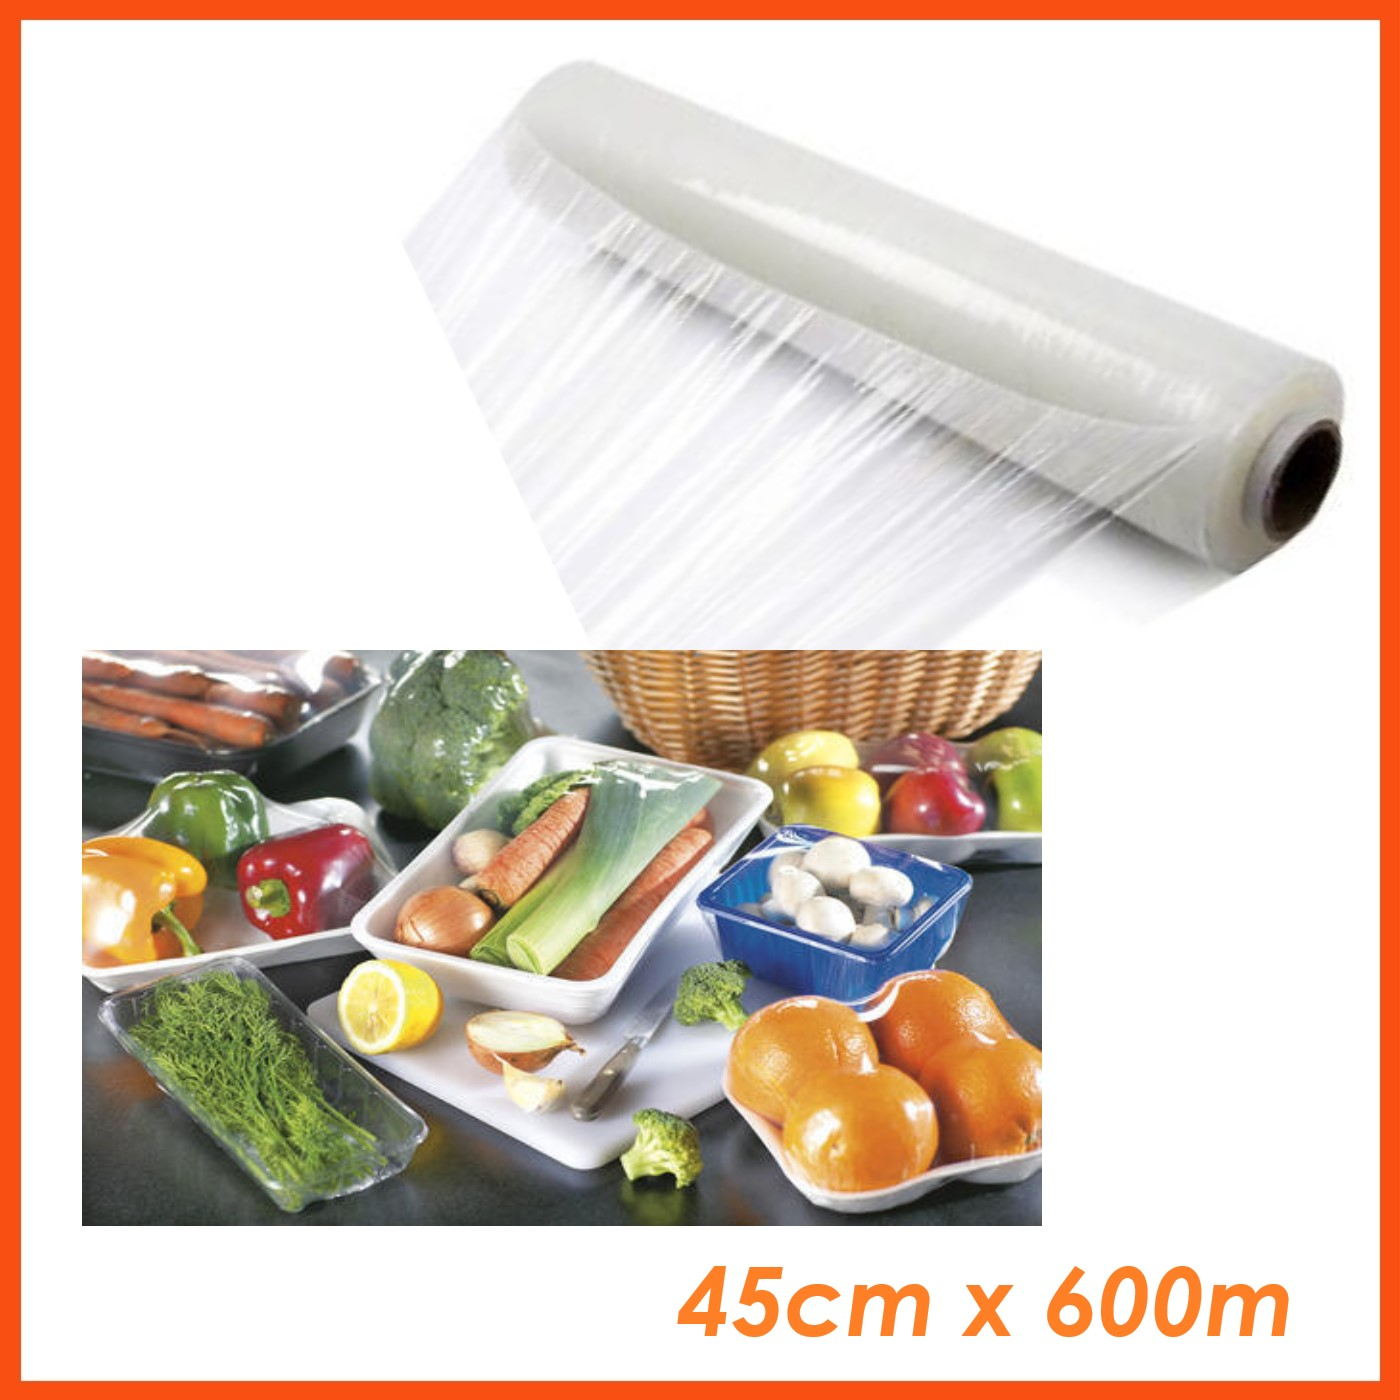 HEAVY DUTY CLING FOOD WRAP ROLL 45cm x 600m WITH CUTTER | Plastic